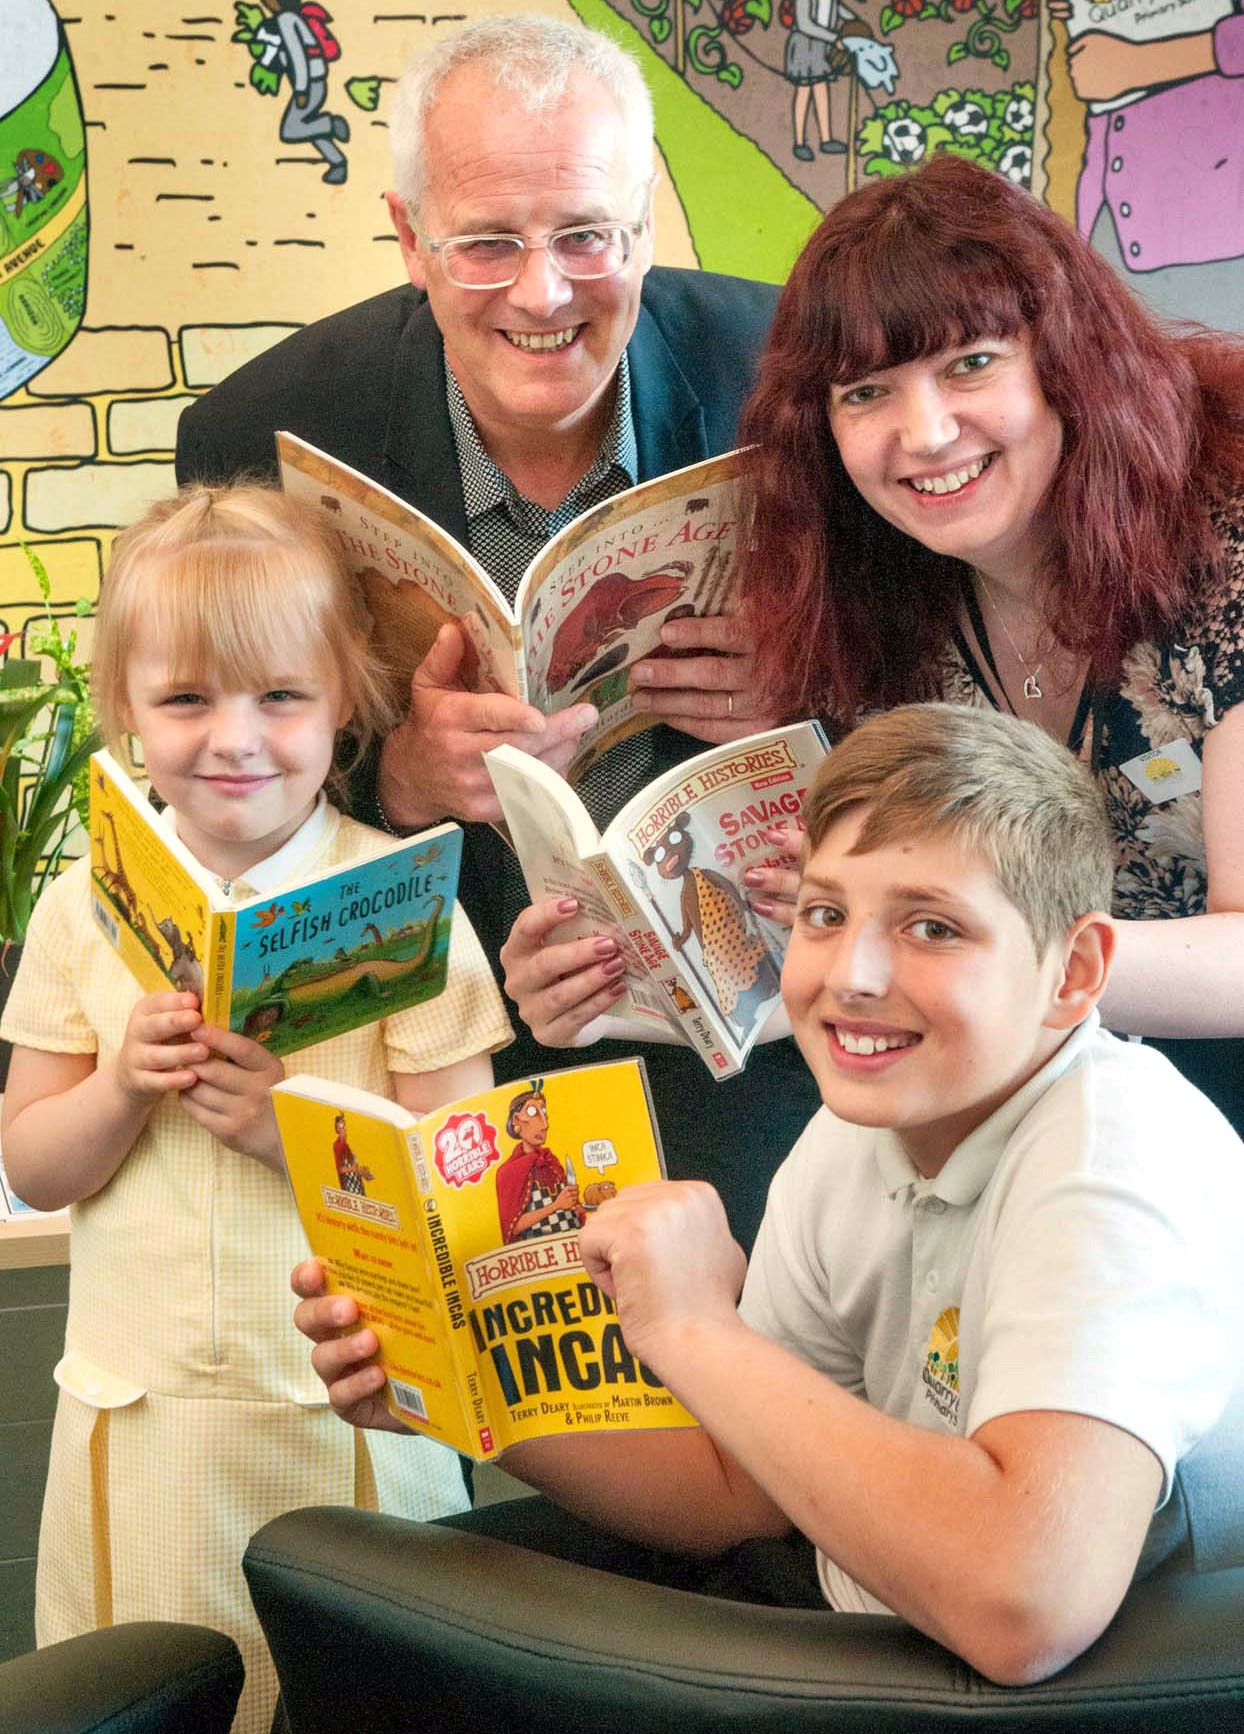 L-r Harriet Marie Smith, Joanne Tippler Dudley Council, Ray Dyer of Peters Books, Ethan Meaden. Buy photo: 211408MH